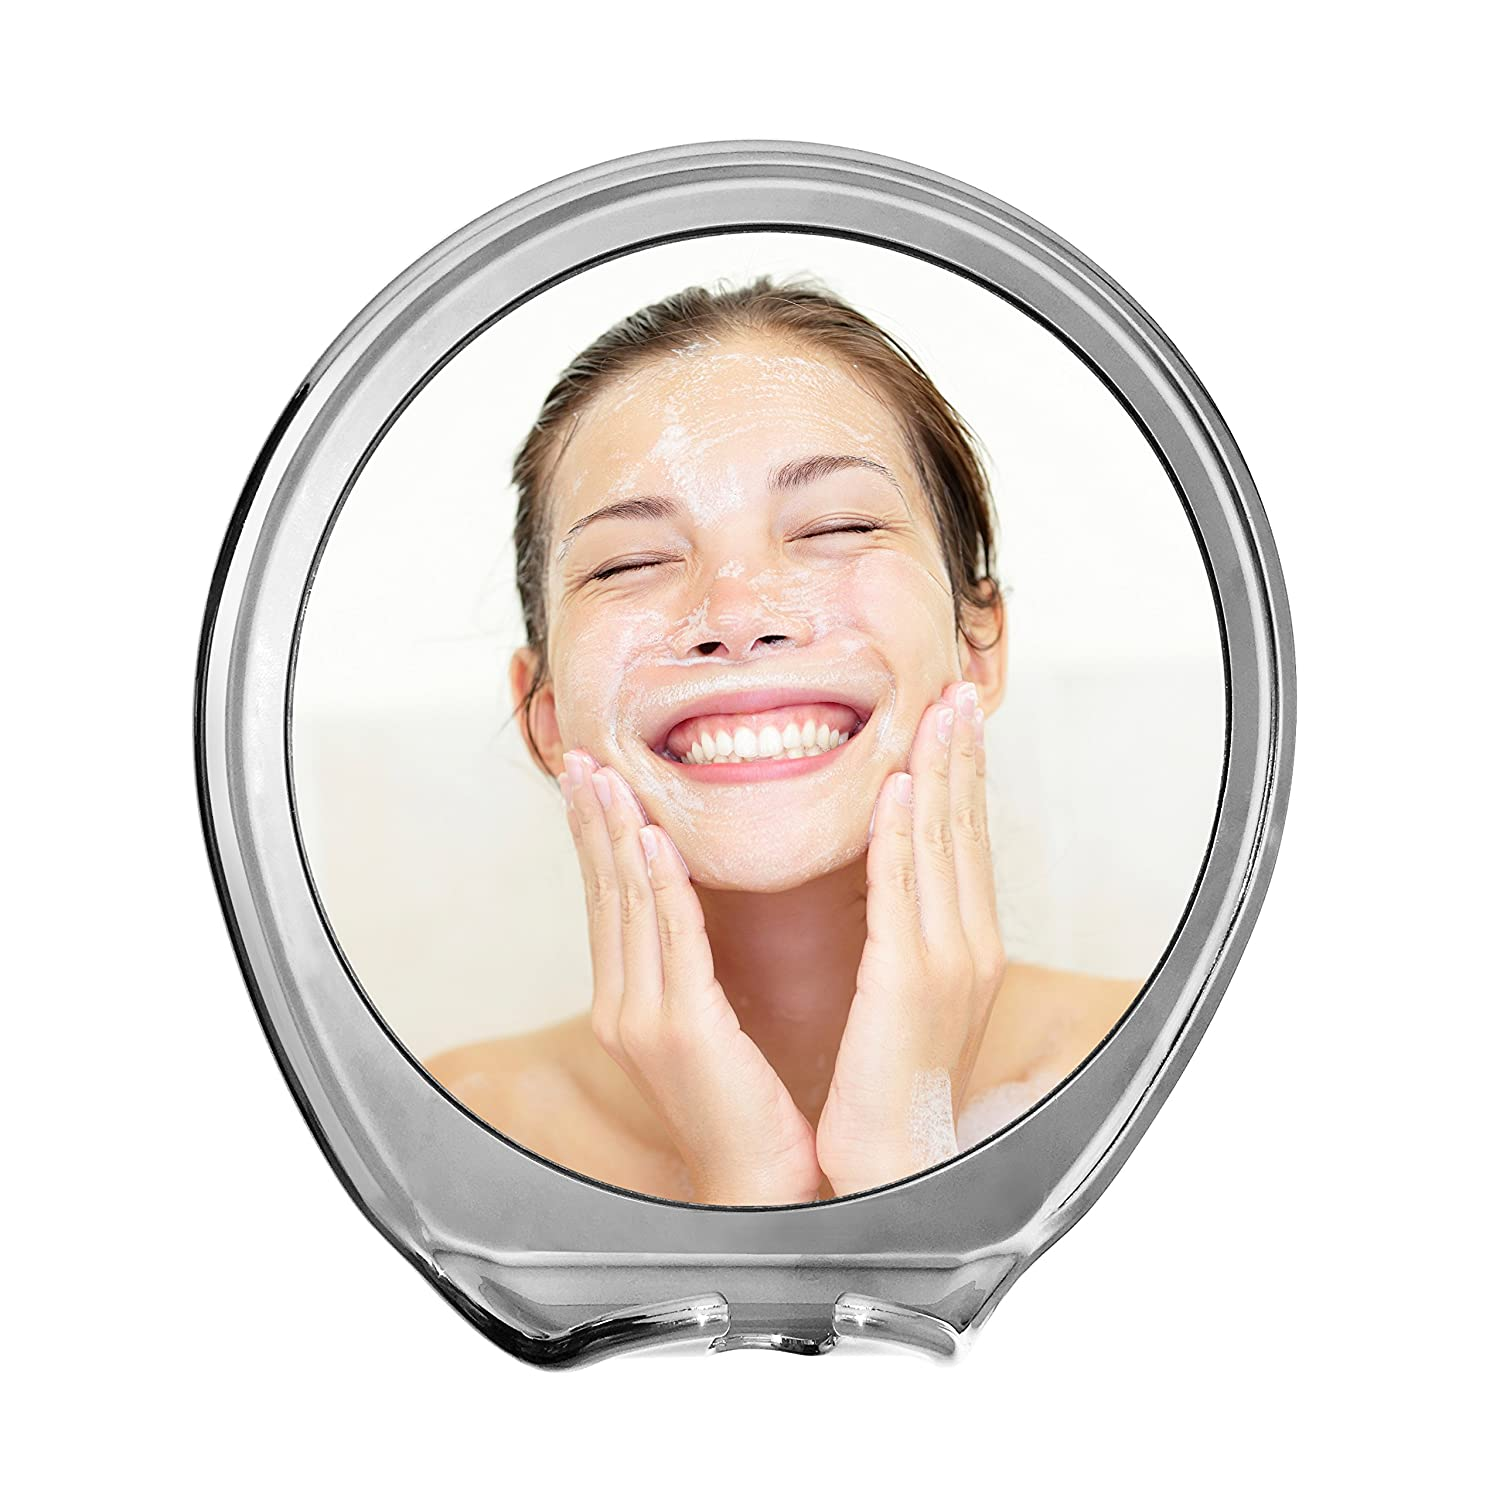 JiBen Fogless Shower Mirror with Power Locking Suction Cup, Built-in Razor Hook and 360 Degree Rotating Adjustable Arm | Best Personal Fog Free Shaving Mirror!